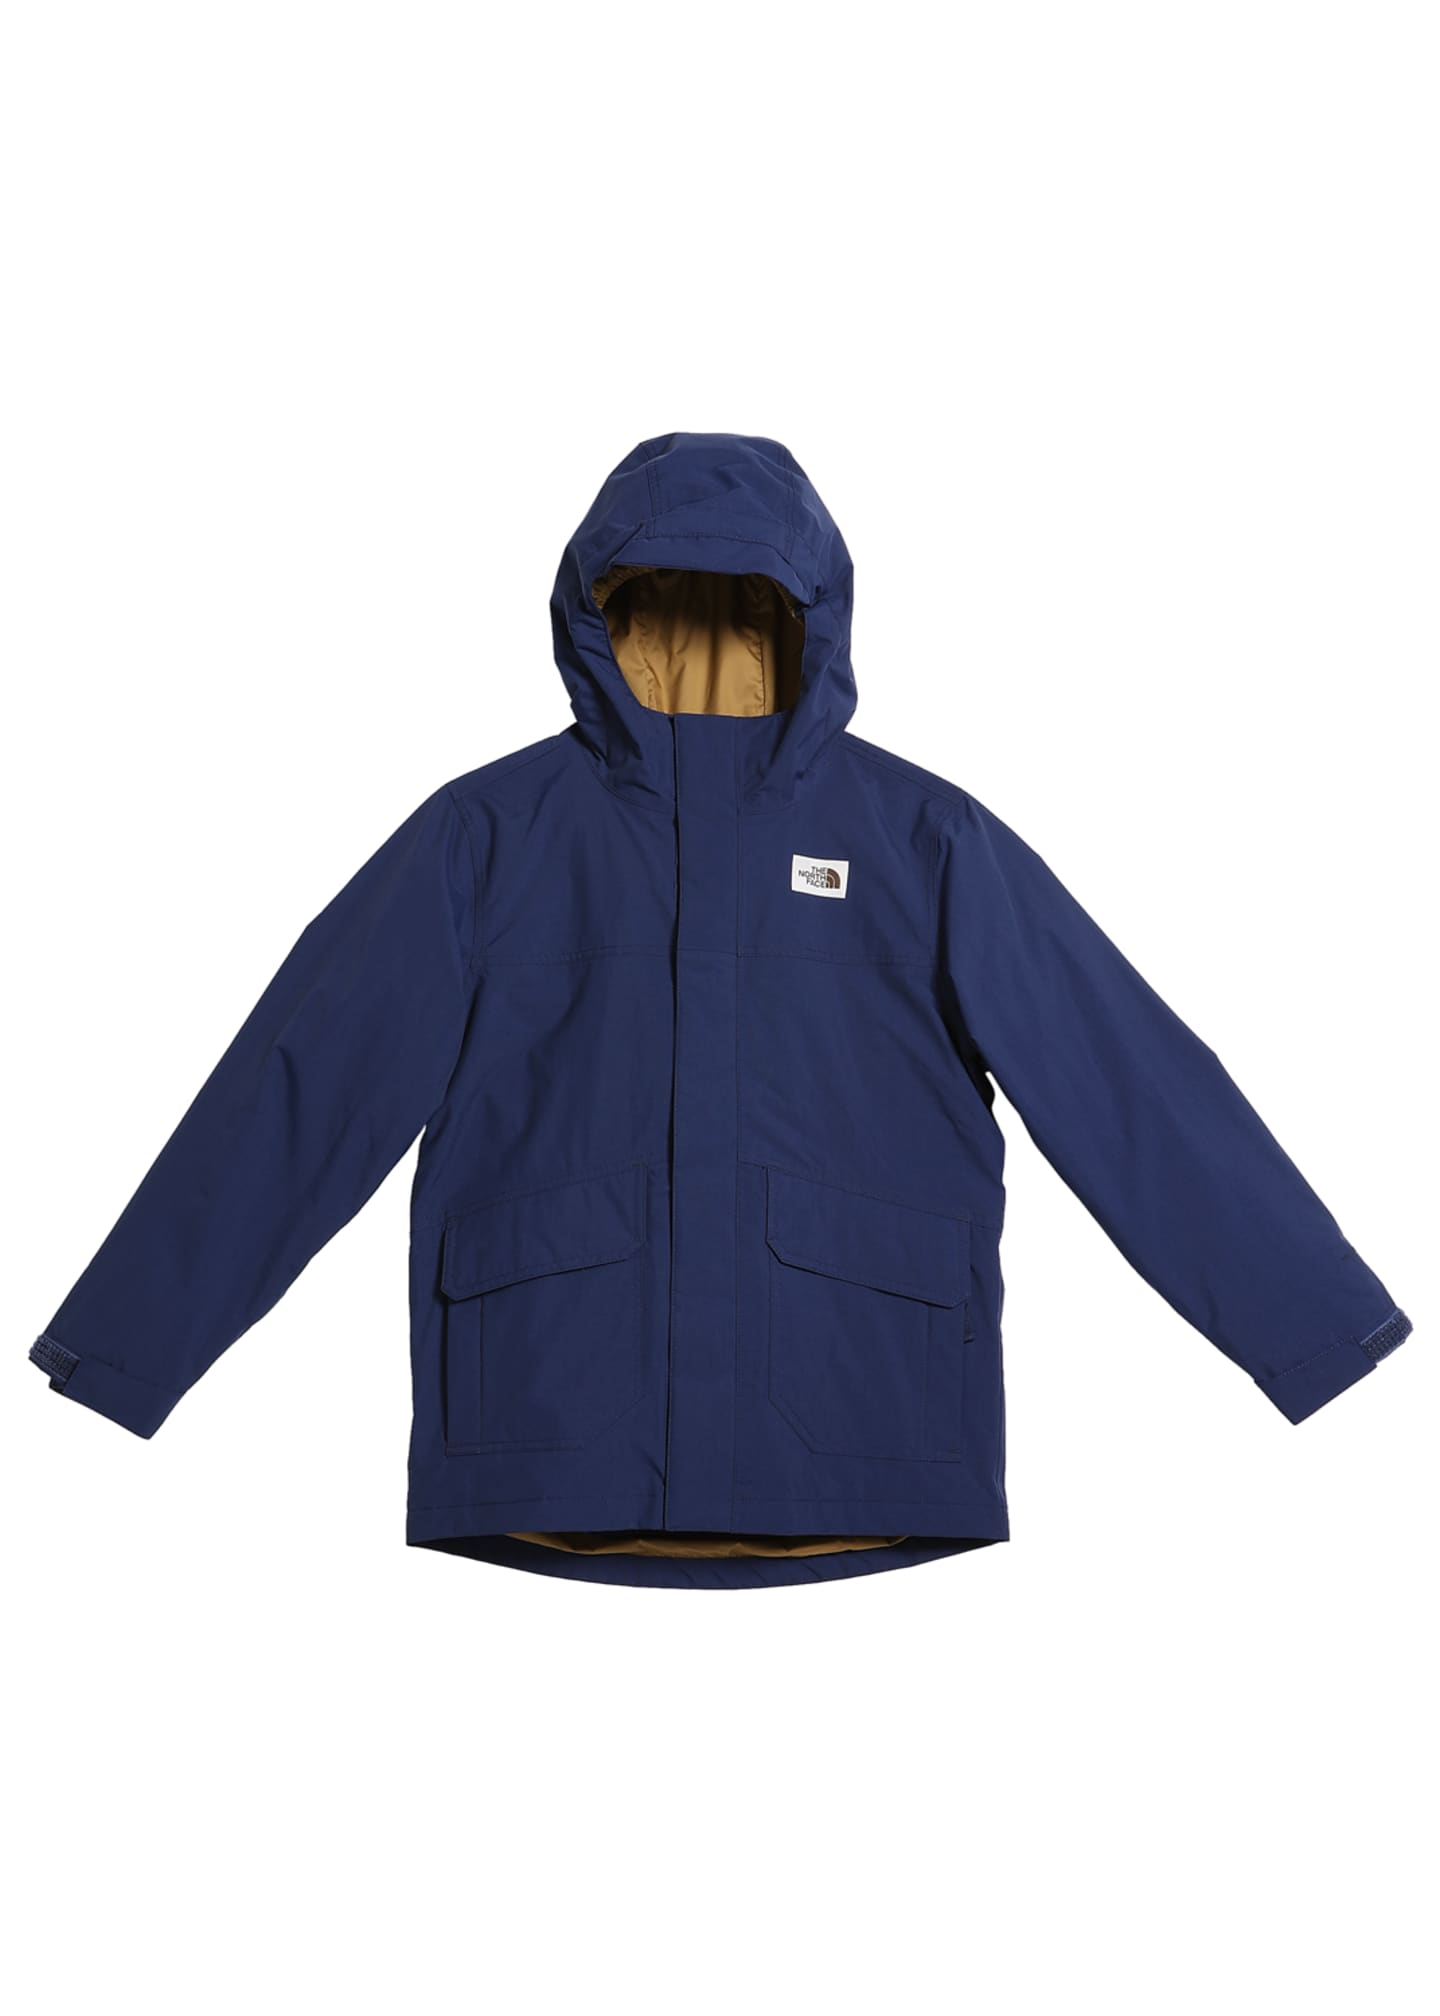 The North Face Boys' Gordon Lyons Triclimate Jacket,